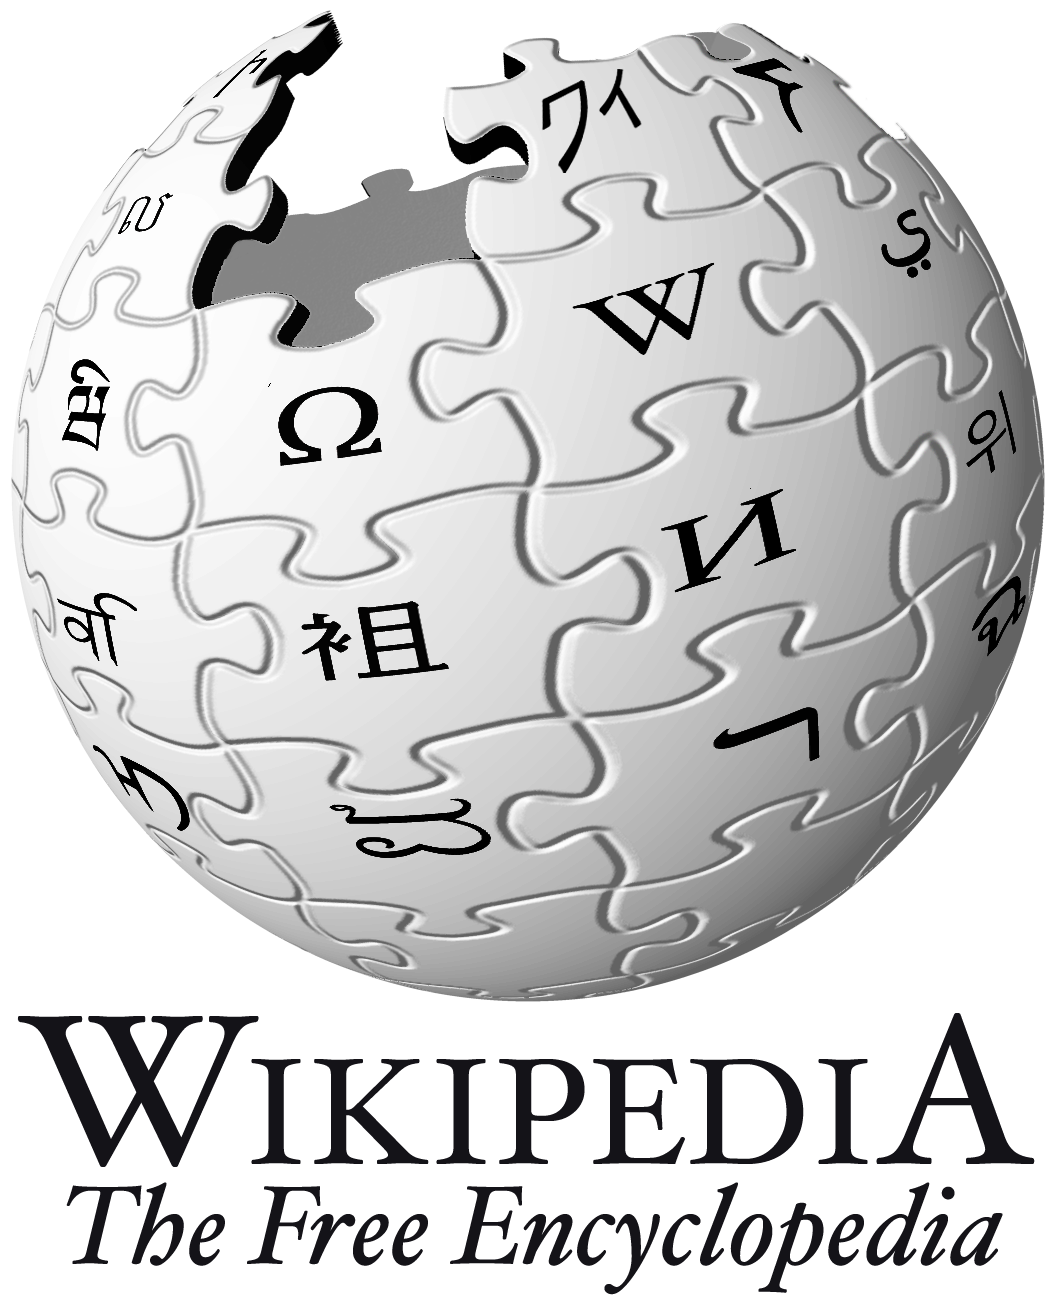 http://upload.wikimedia.org/wikipedia/commons/9/91/Nohat-logo-XI-big-text.png